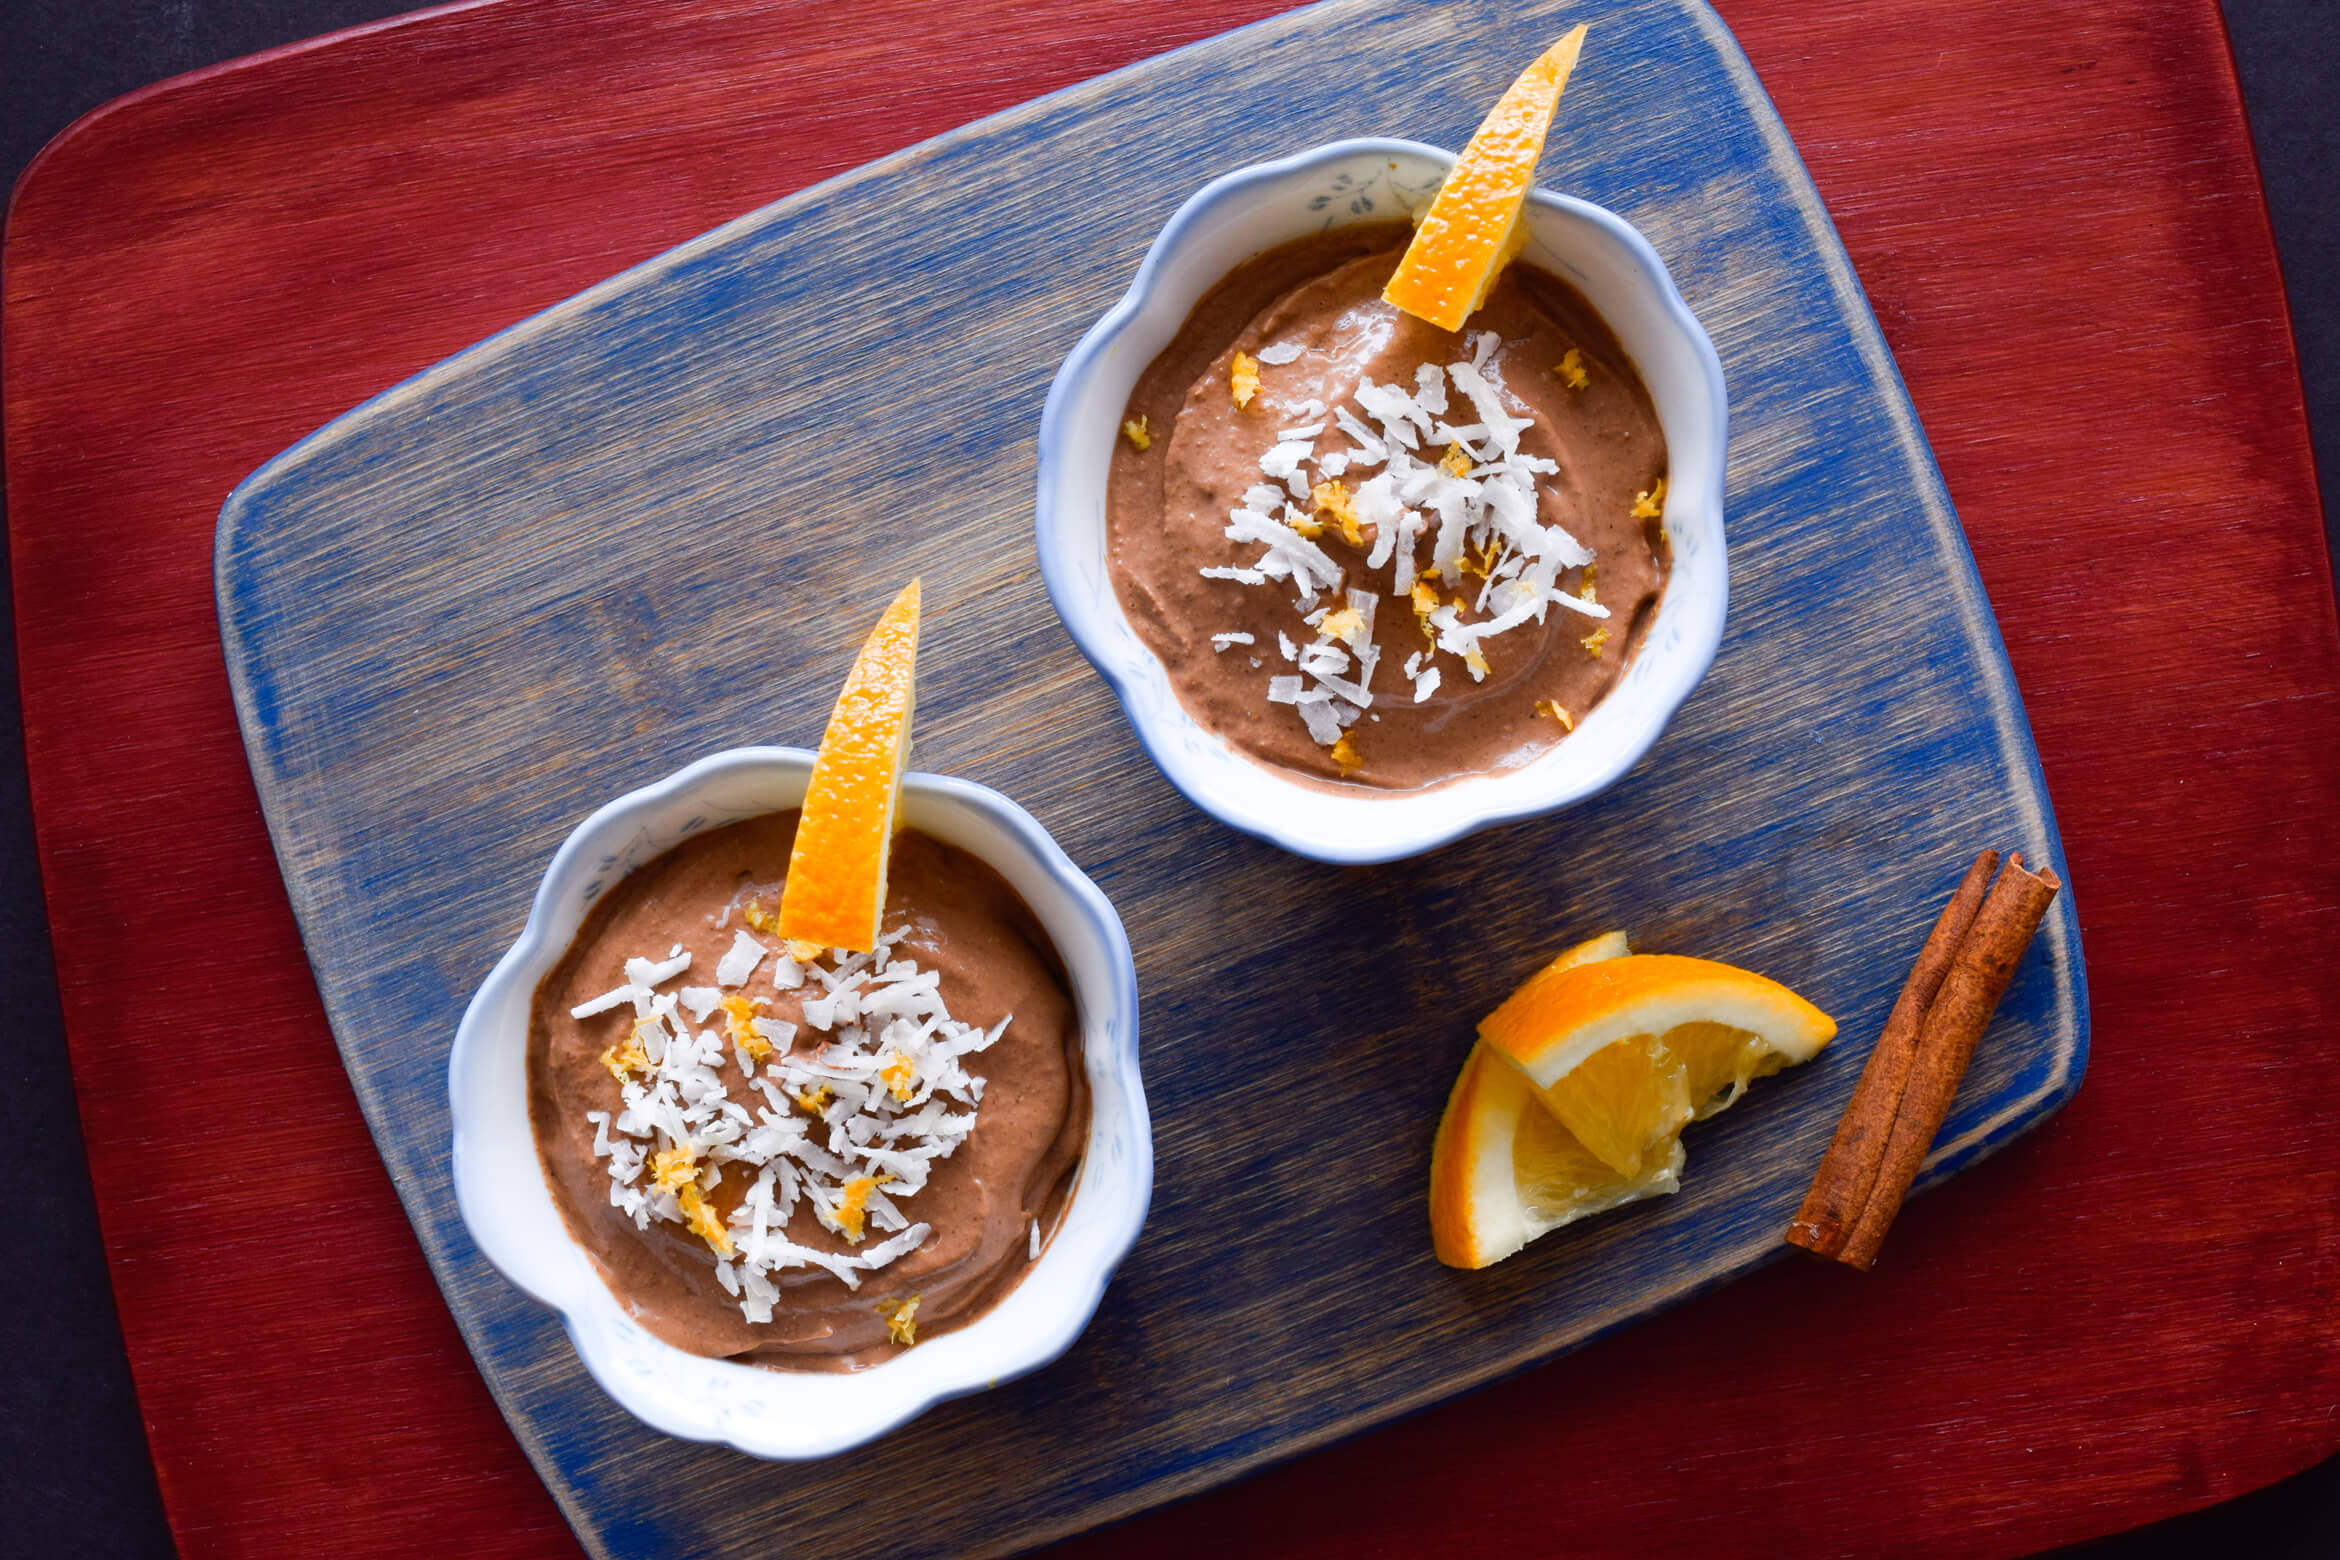 Mayan (Yours) Chocolate Mousse